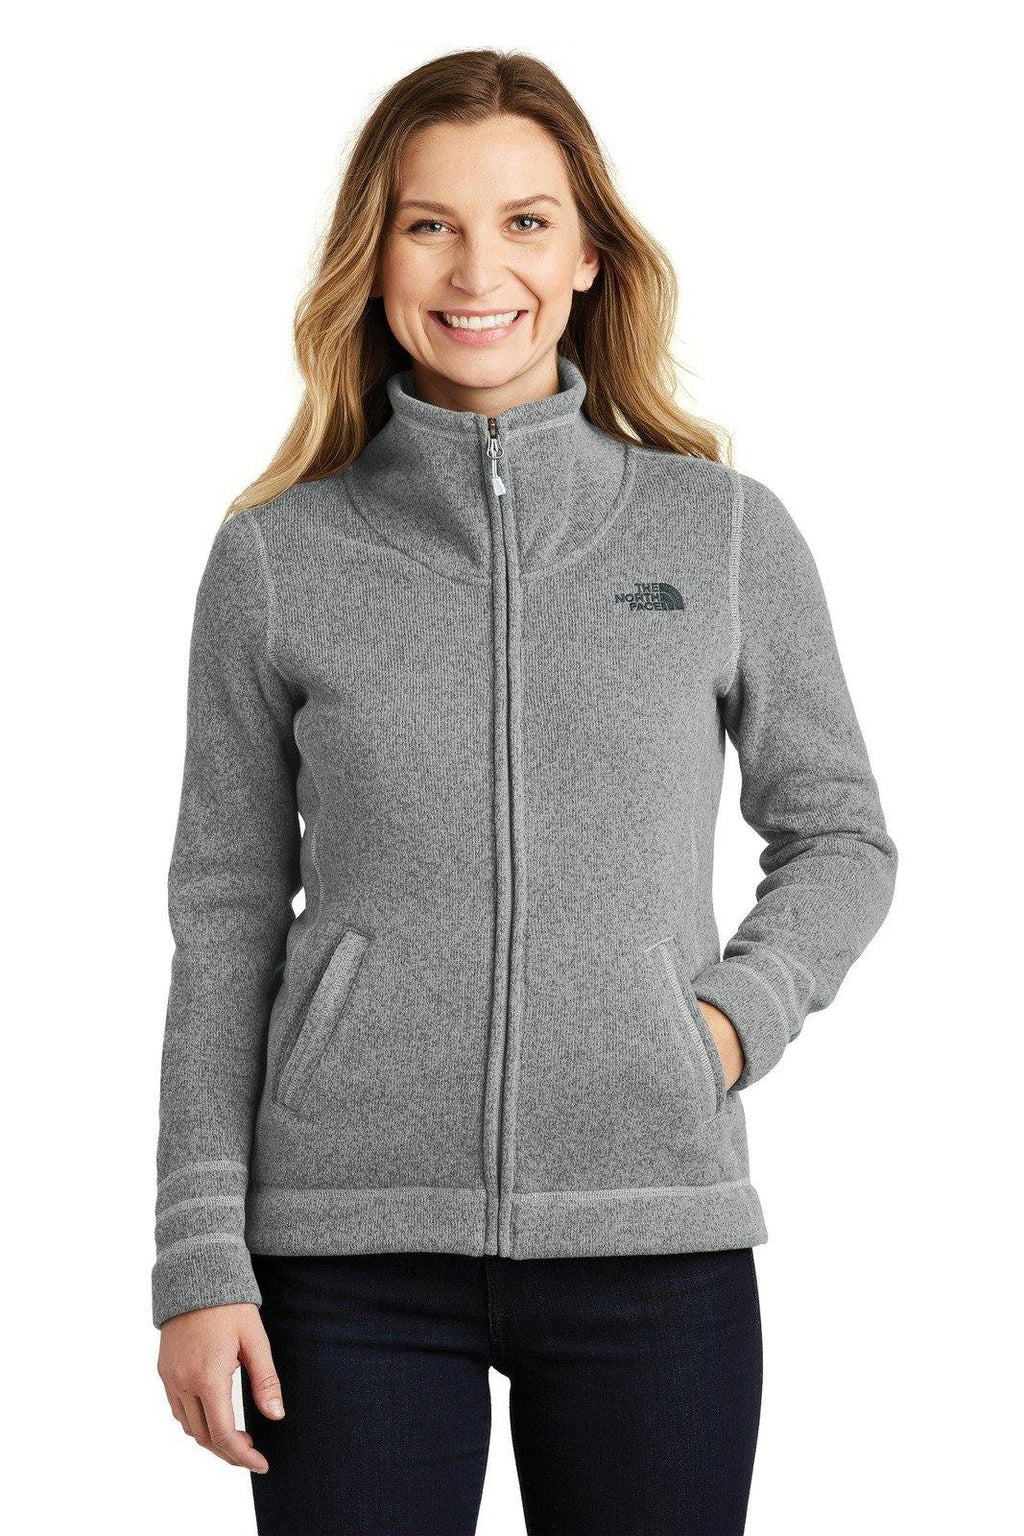 The North Face Ladies Sweater Fleece Jacket - New Age Promotions